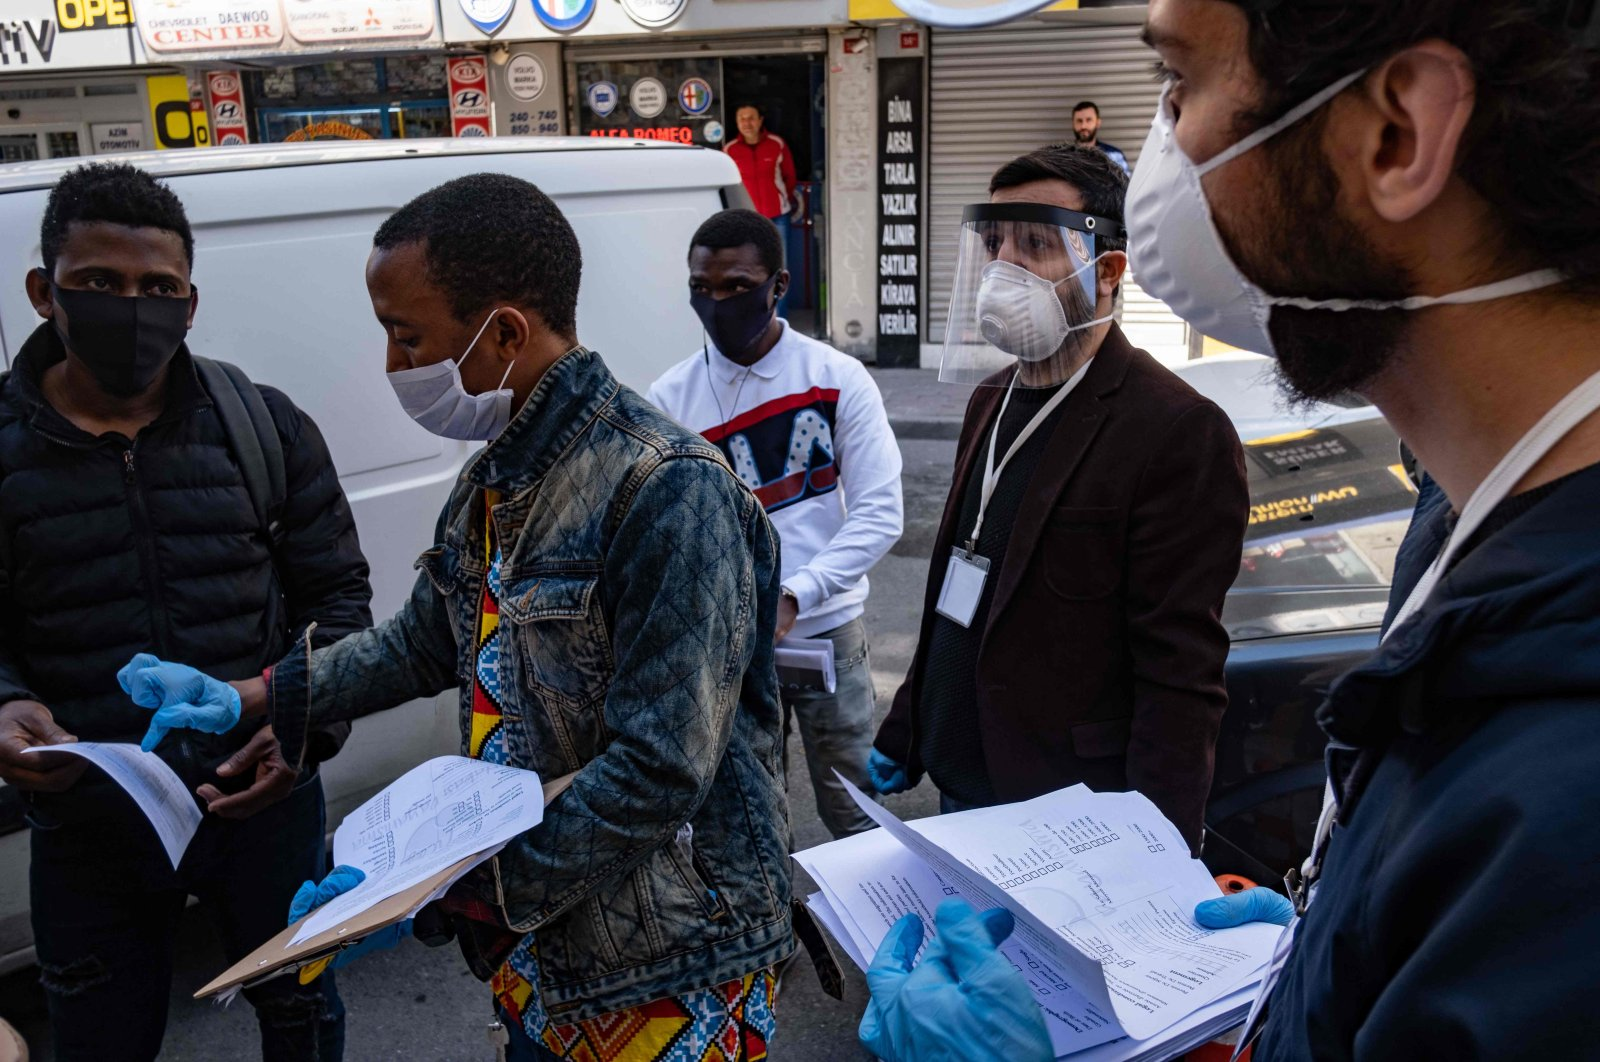 Members of a solidarity network hand out disinfectant, gloves and face masks as well as food cards to African migrants in Istanbul, April 17, 2020. (AFP Photo)